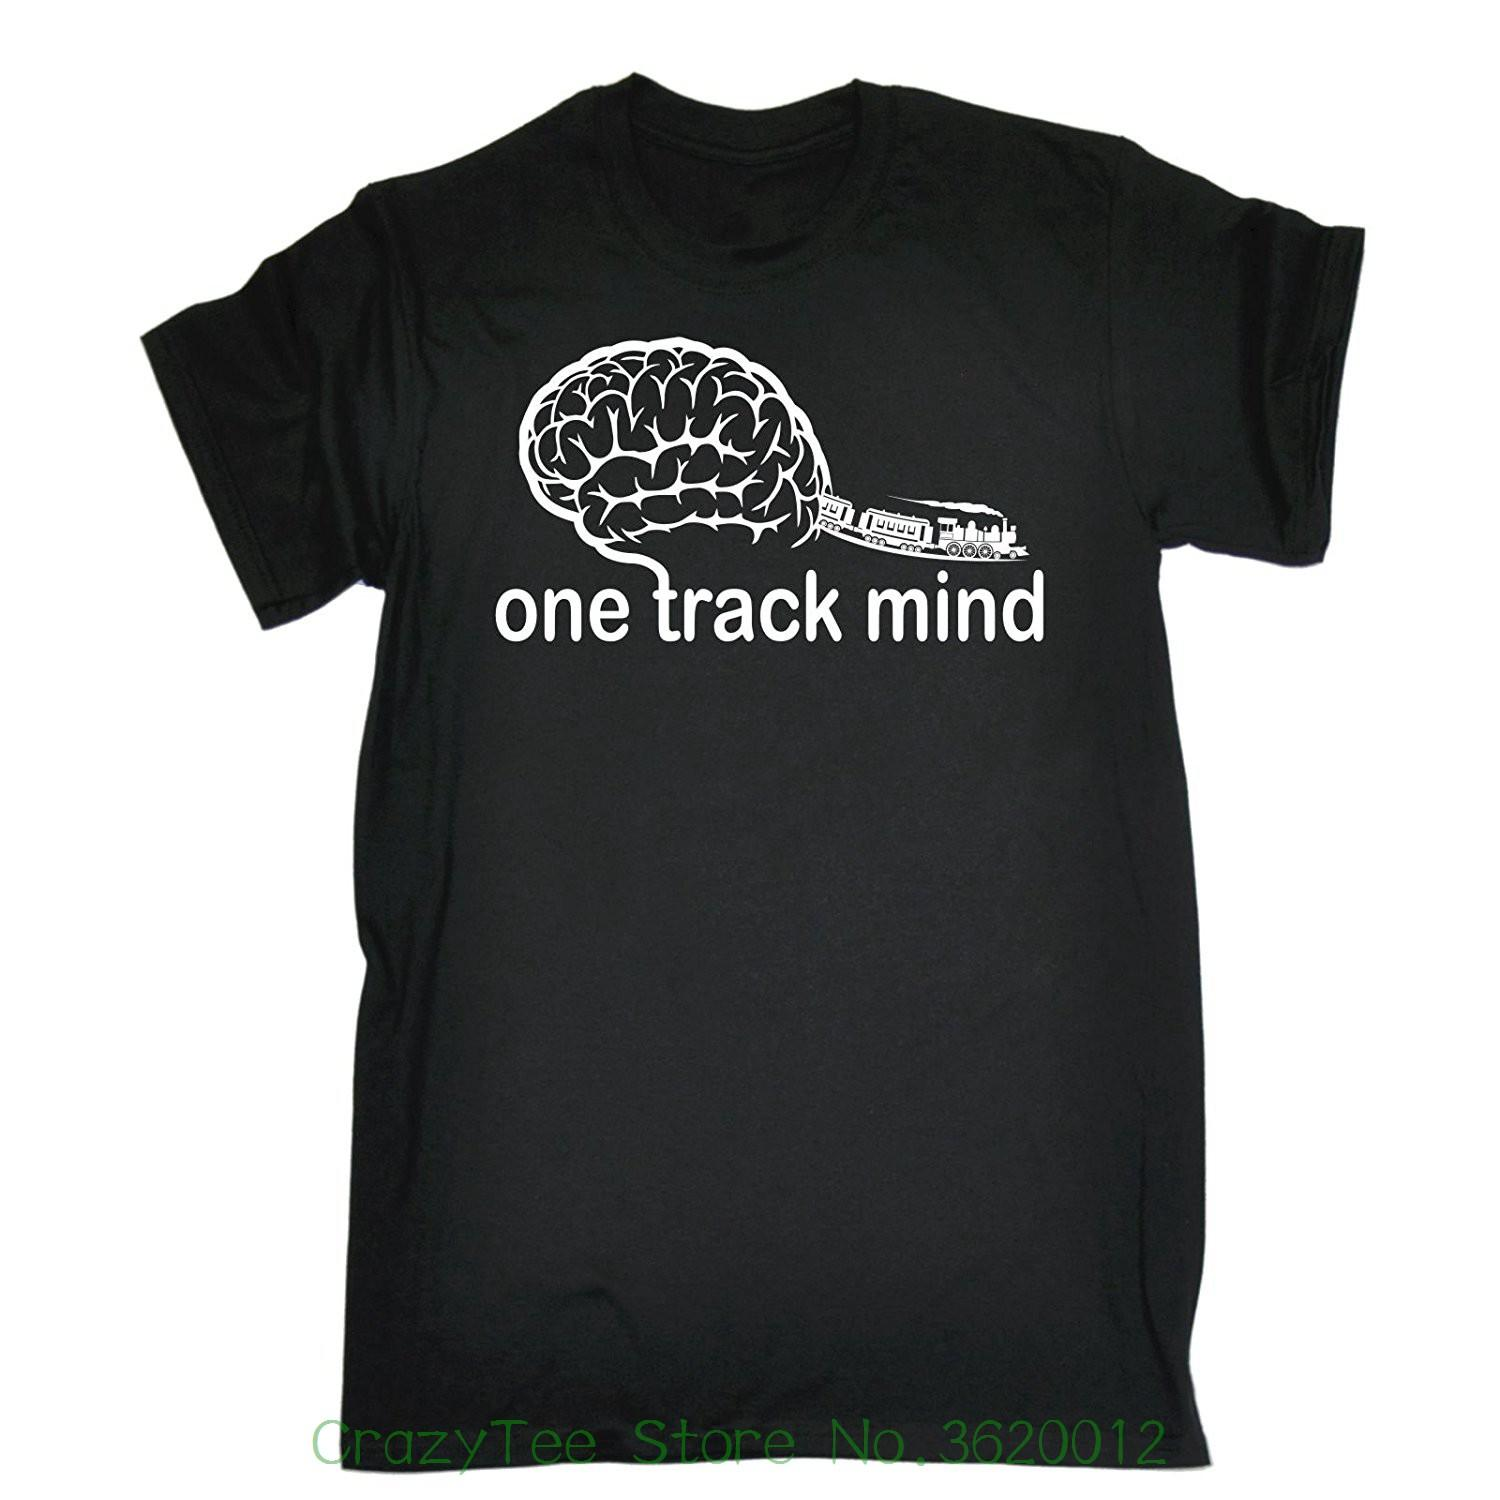 2018 new mens t shirts 123t mens one track mind trains t shirt funny christmas casual birthday tee online with 16 56 piece on crazyteestores store